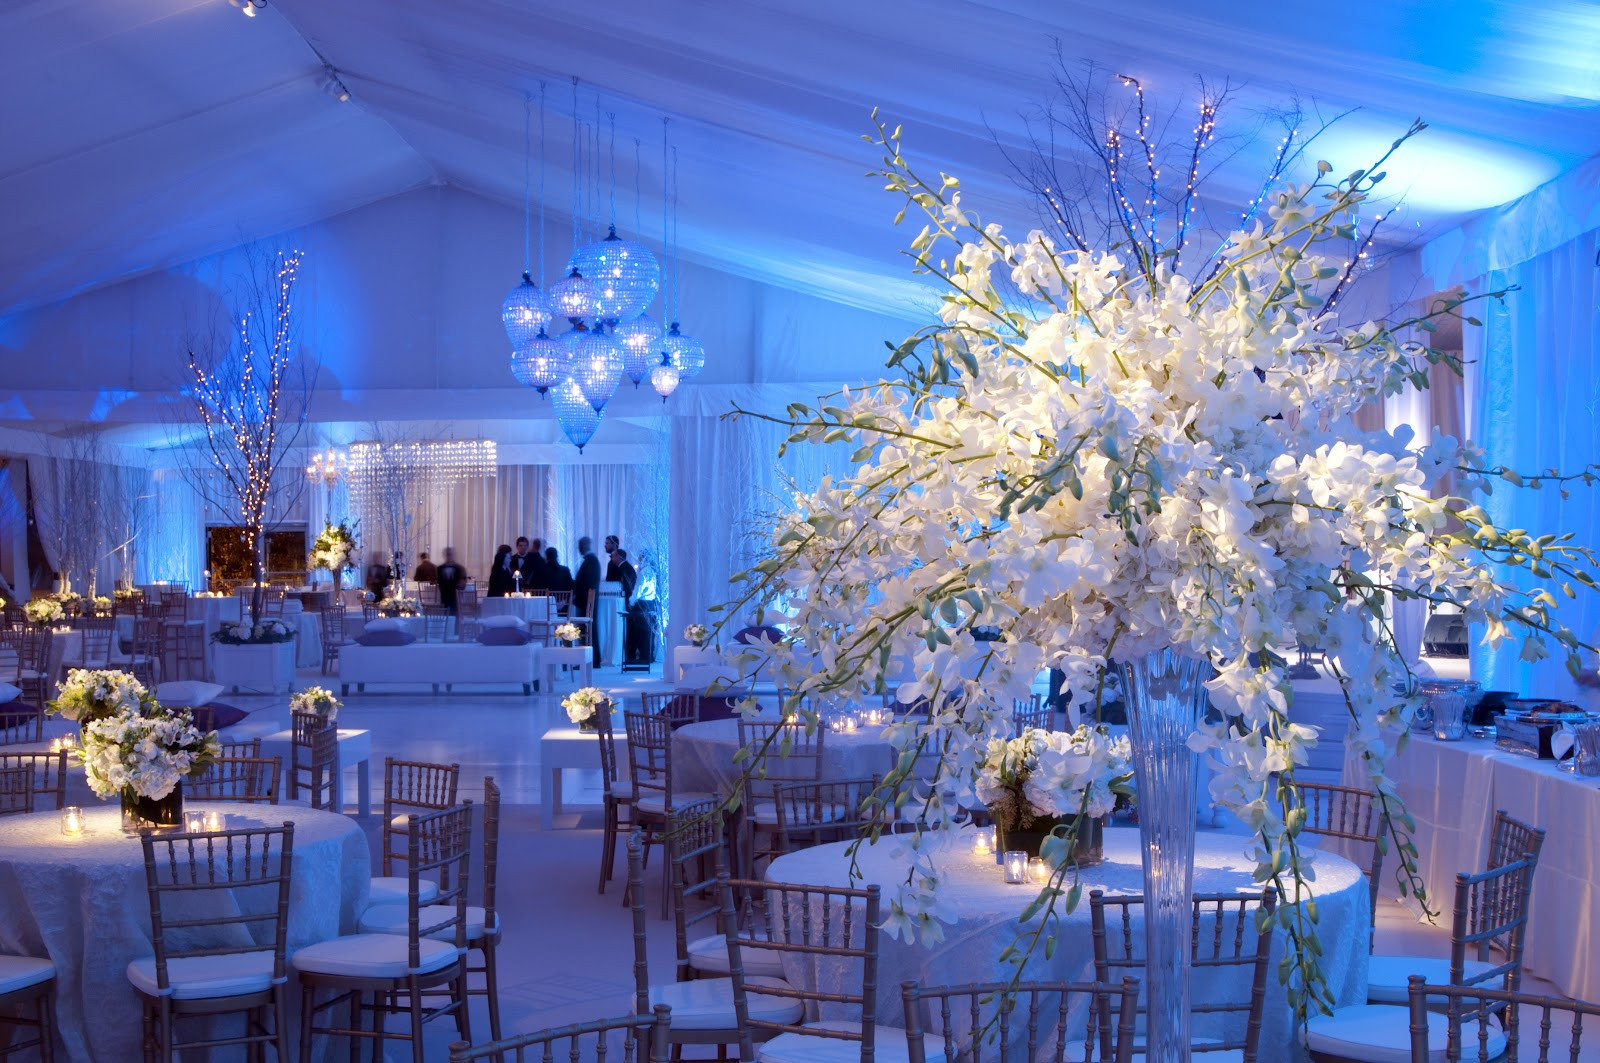 winter-themed-wedding-decorations-image-collections-wedding-dress-design-of-winter-wonderland-wedding-decorations-of-winter-wonderland